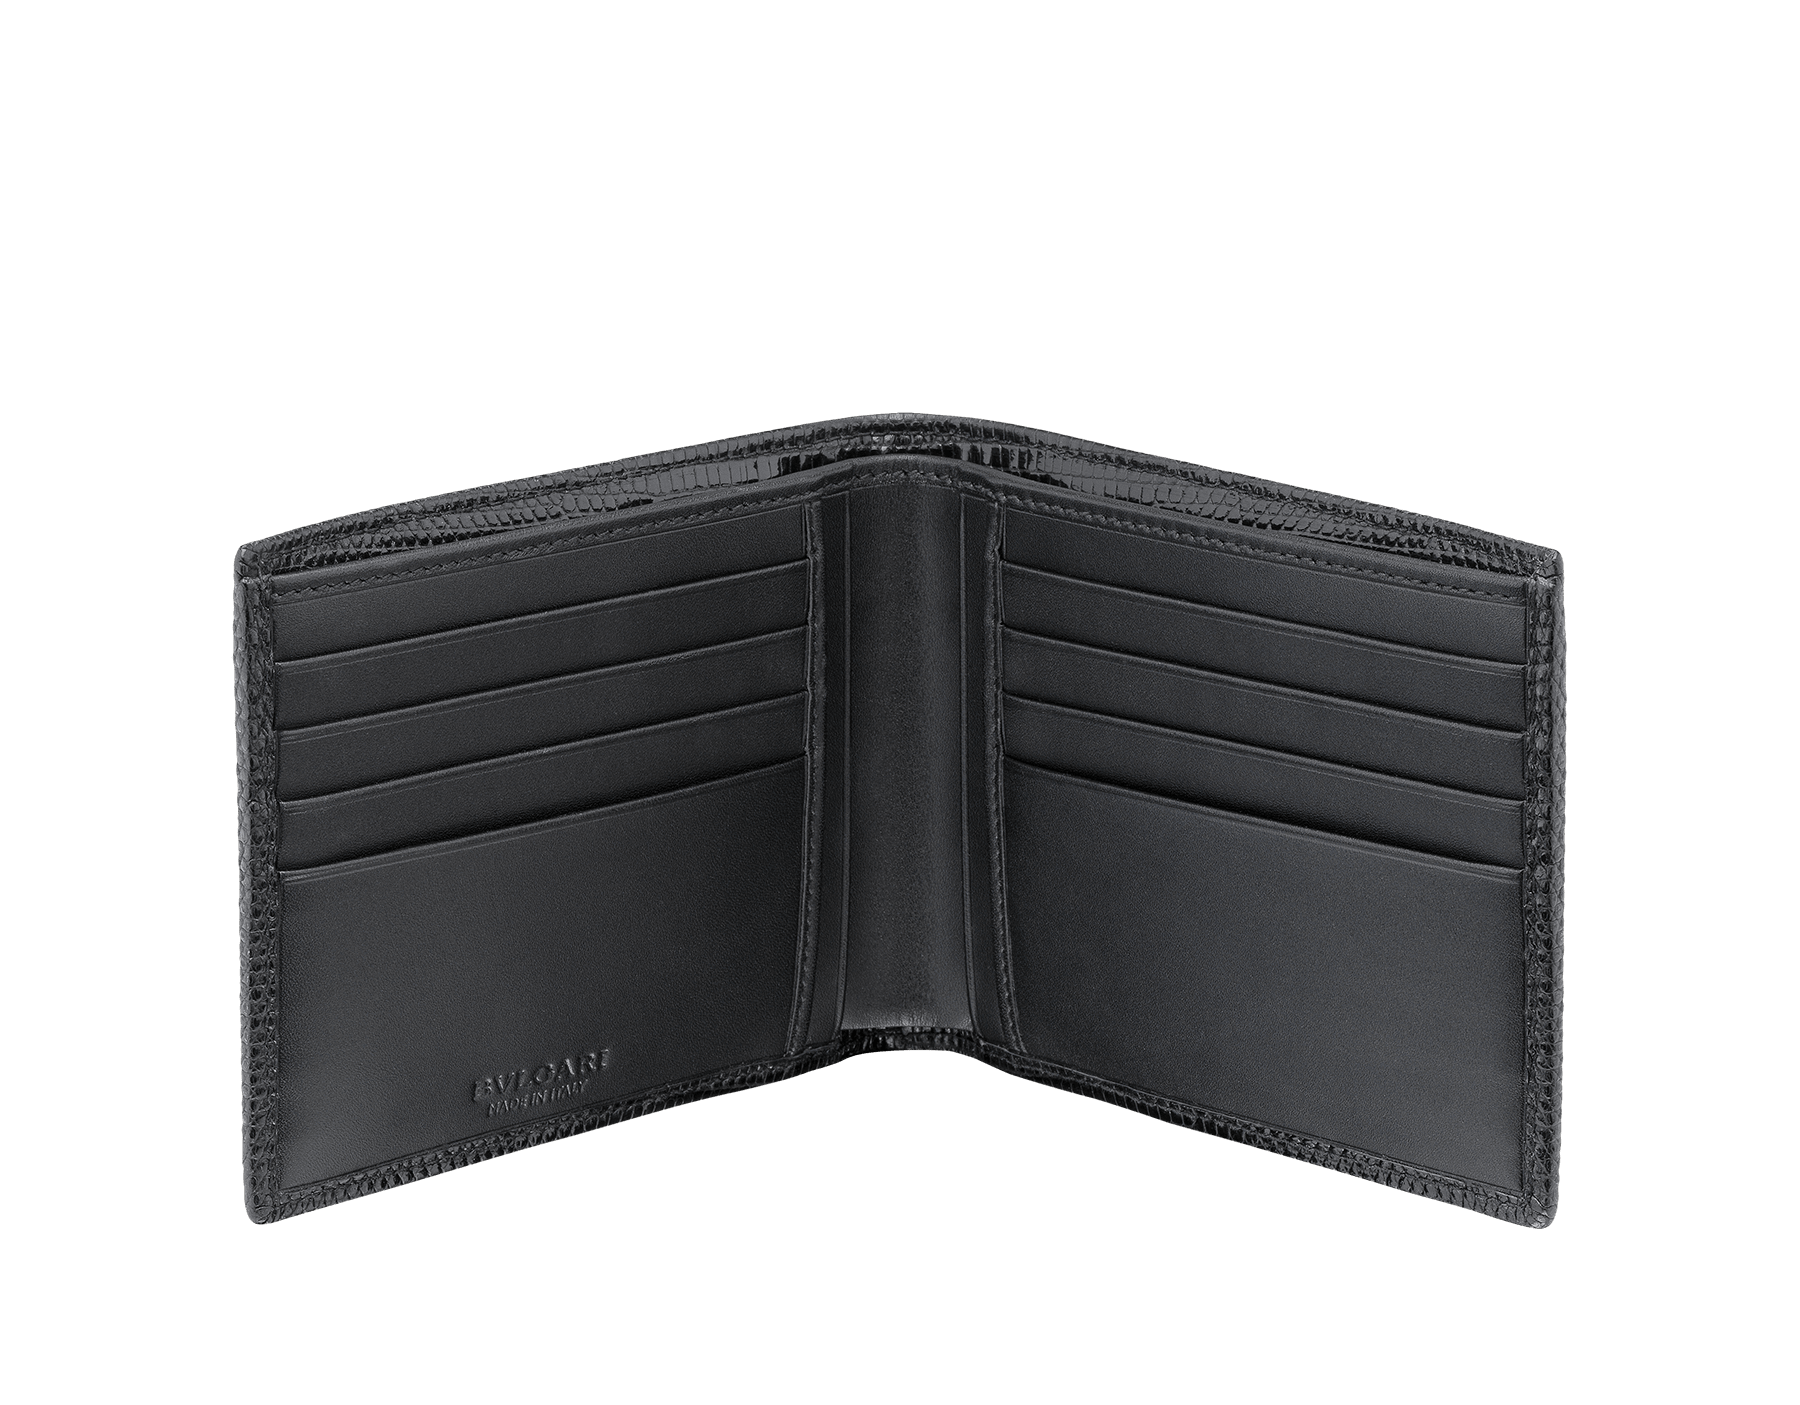 Wallet hipster for men in black shiny lizard skin and royal nappa lining. Brass palladium plated hardware featuring the BVLGARI BVLGARI motif. 285327 image 2